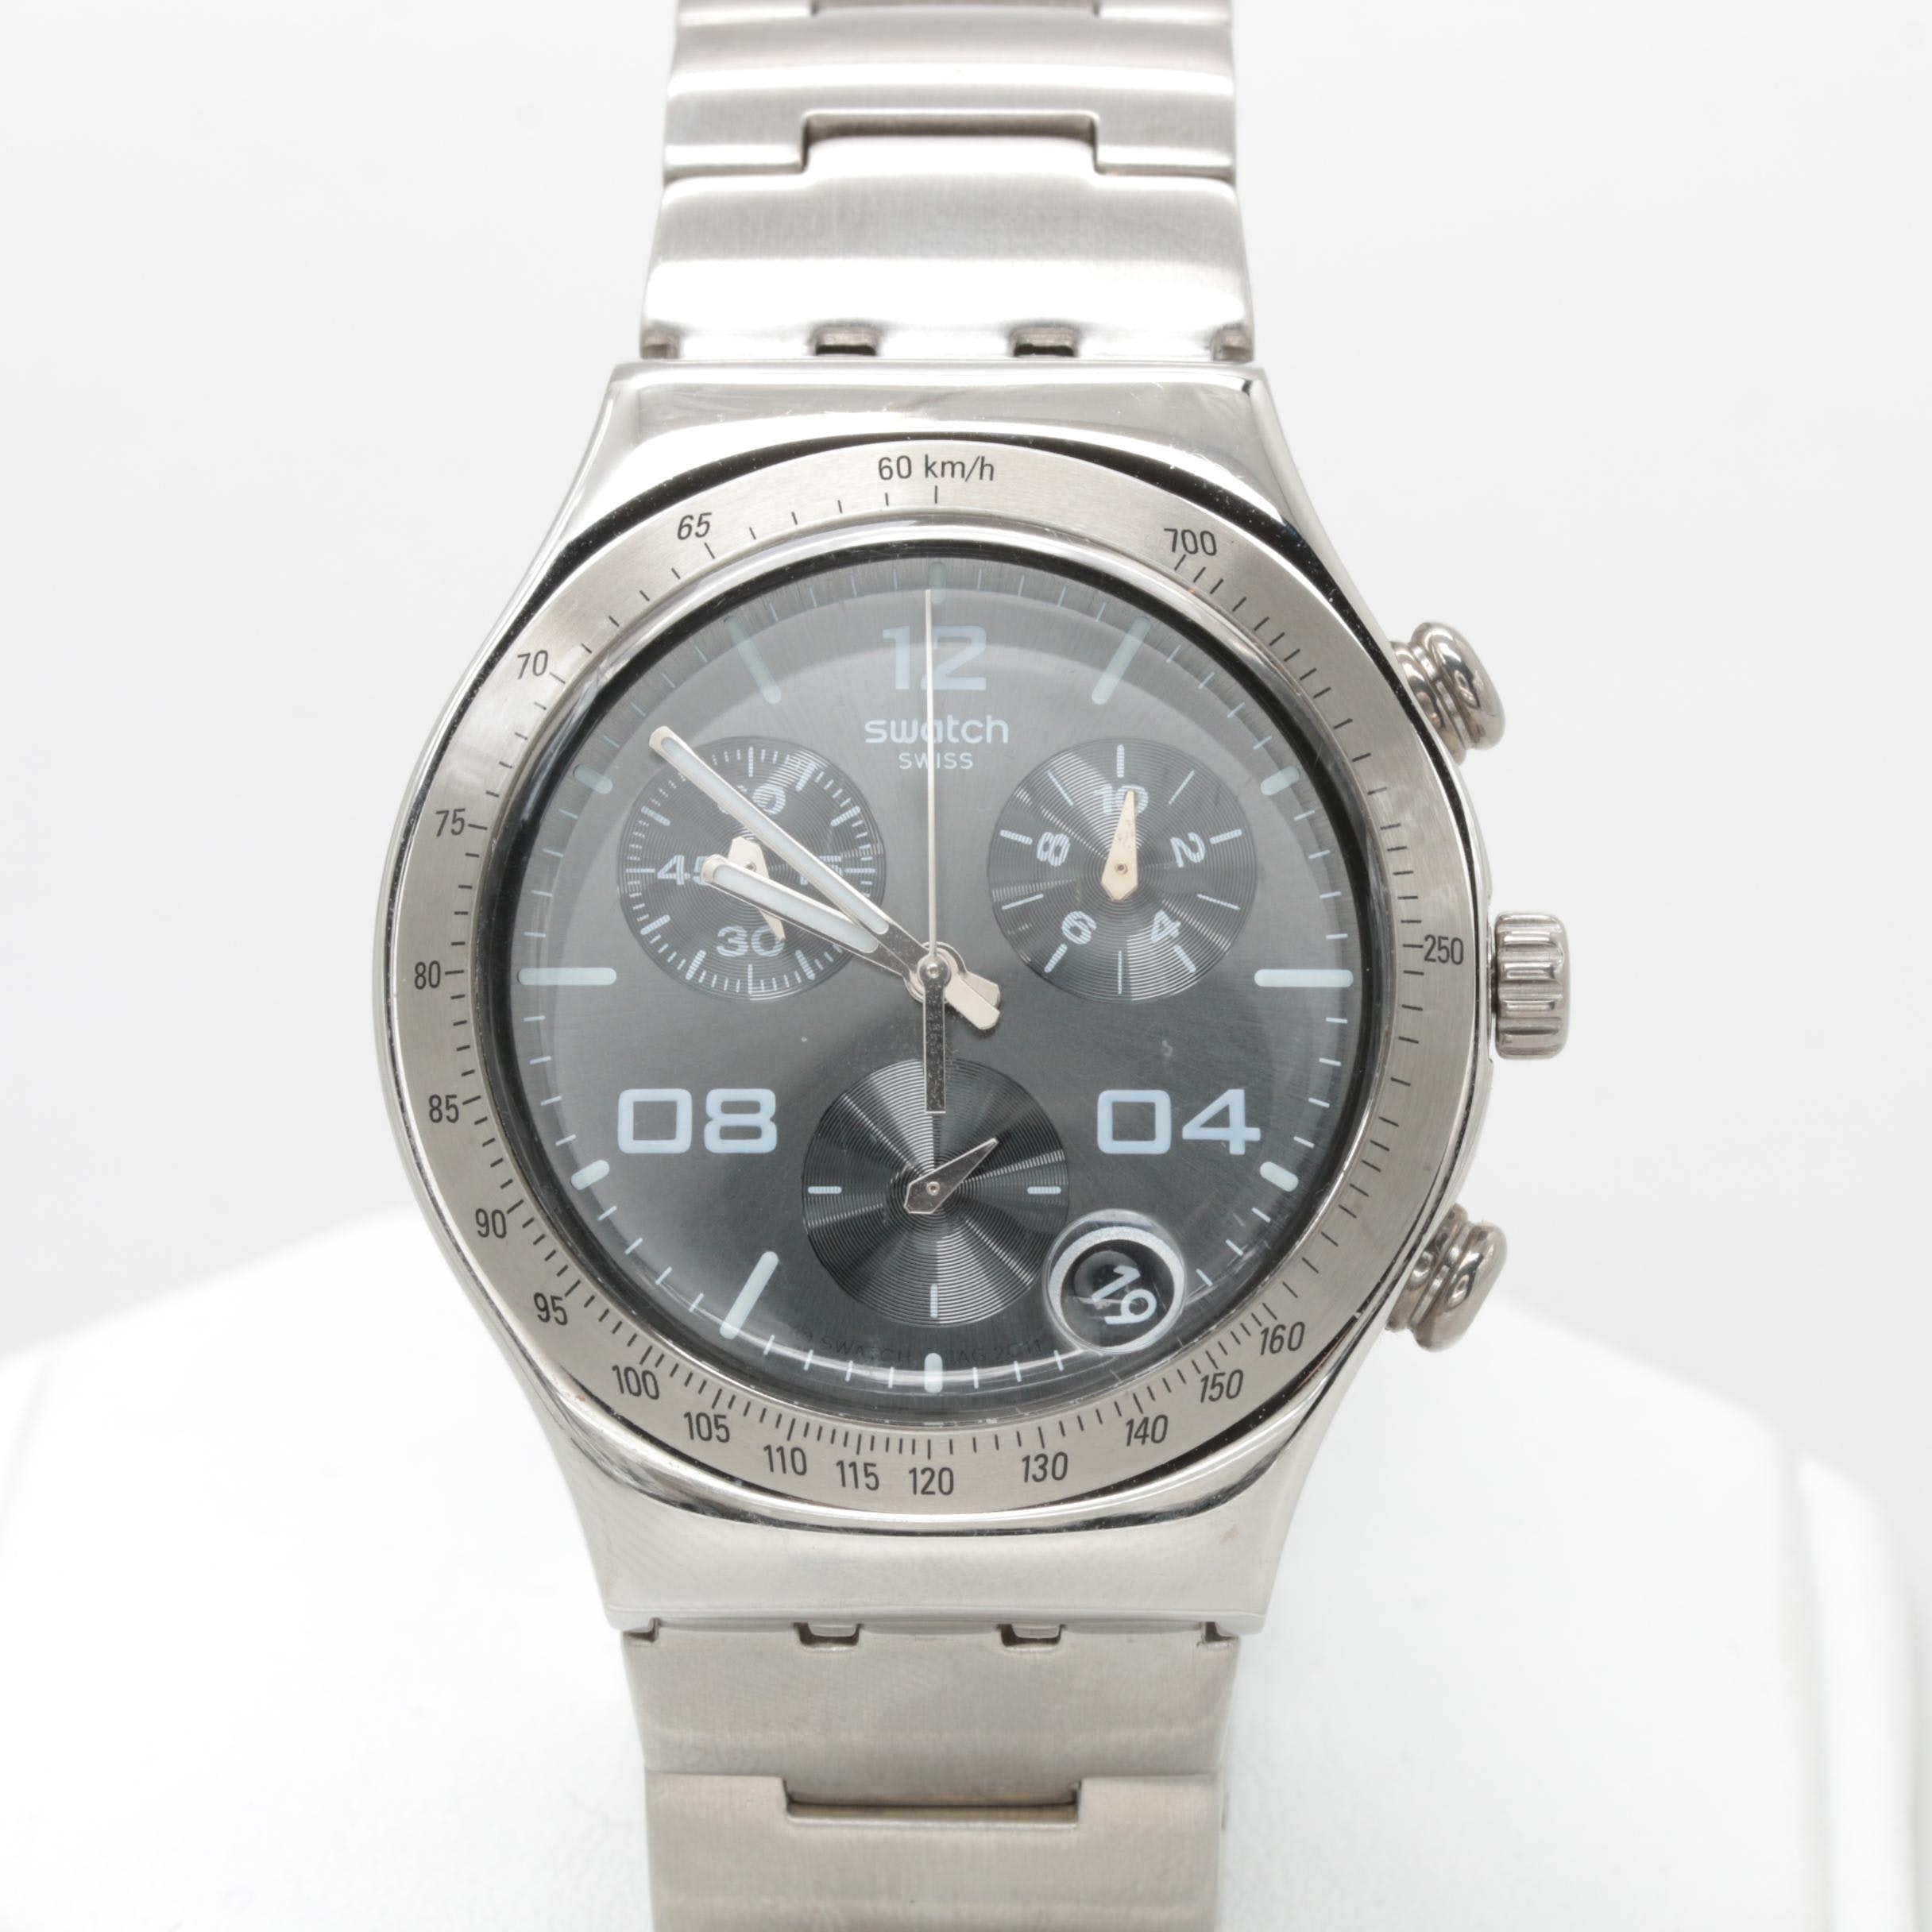 Swatch Stainless Steel Chronograph Wristwatch